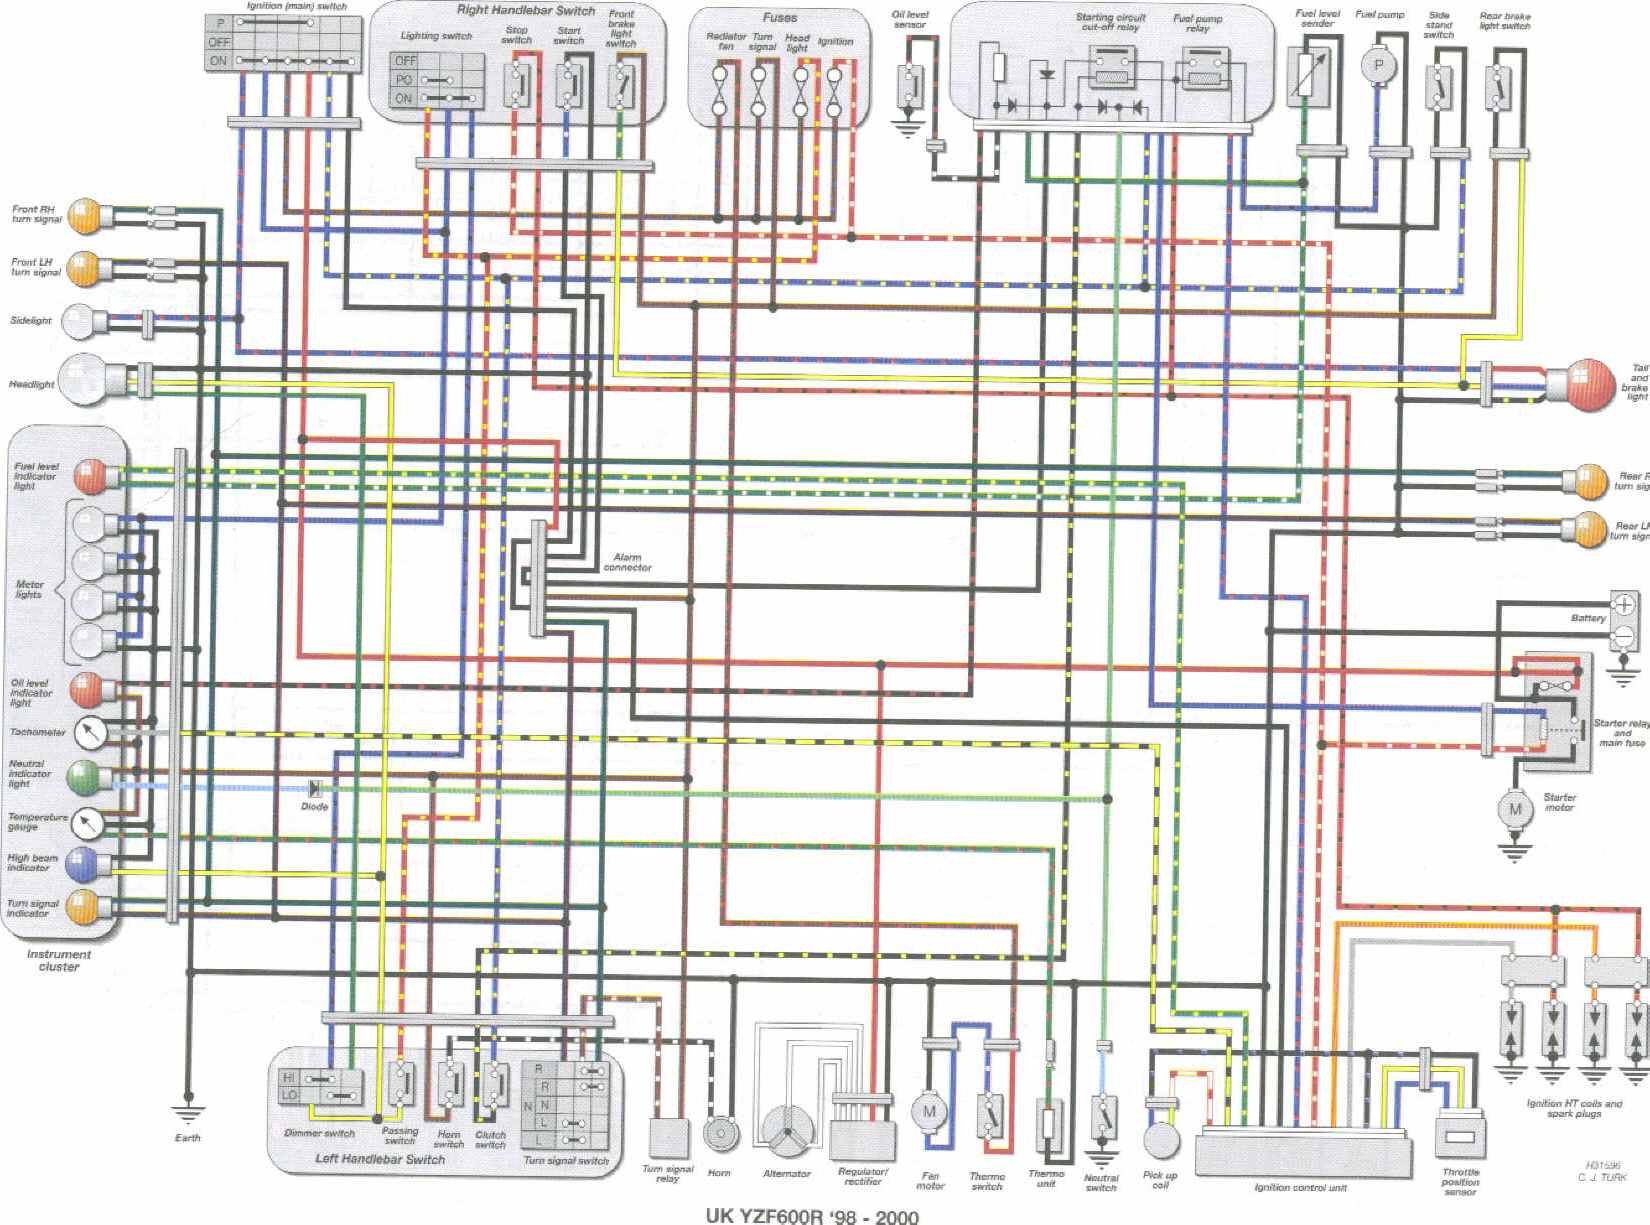 2643019200_1361720875 yzf600r wiring diagram wiring diagram shrutiradio Basic Electrical Wiring Diagrams at aneh.co